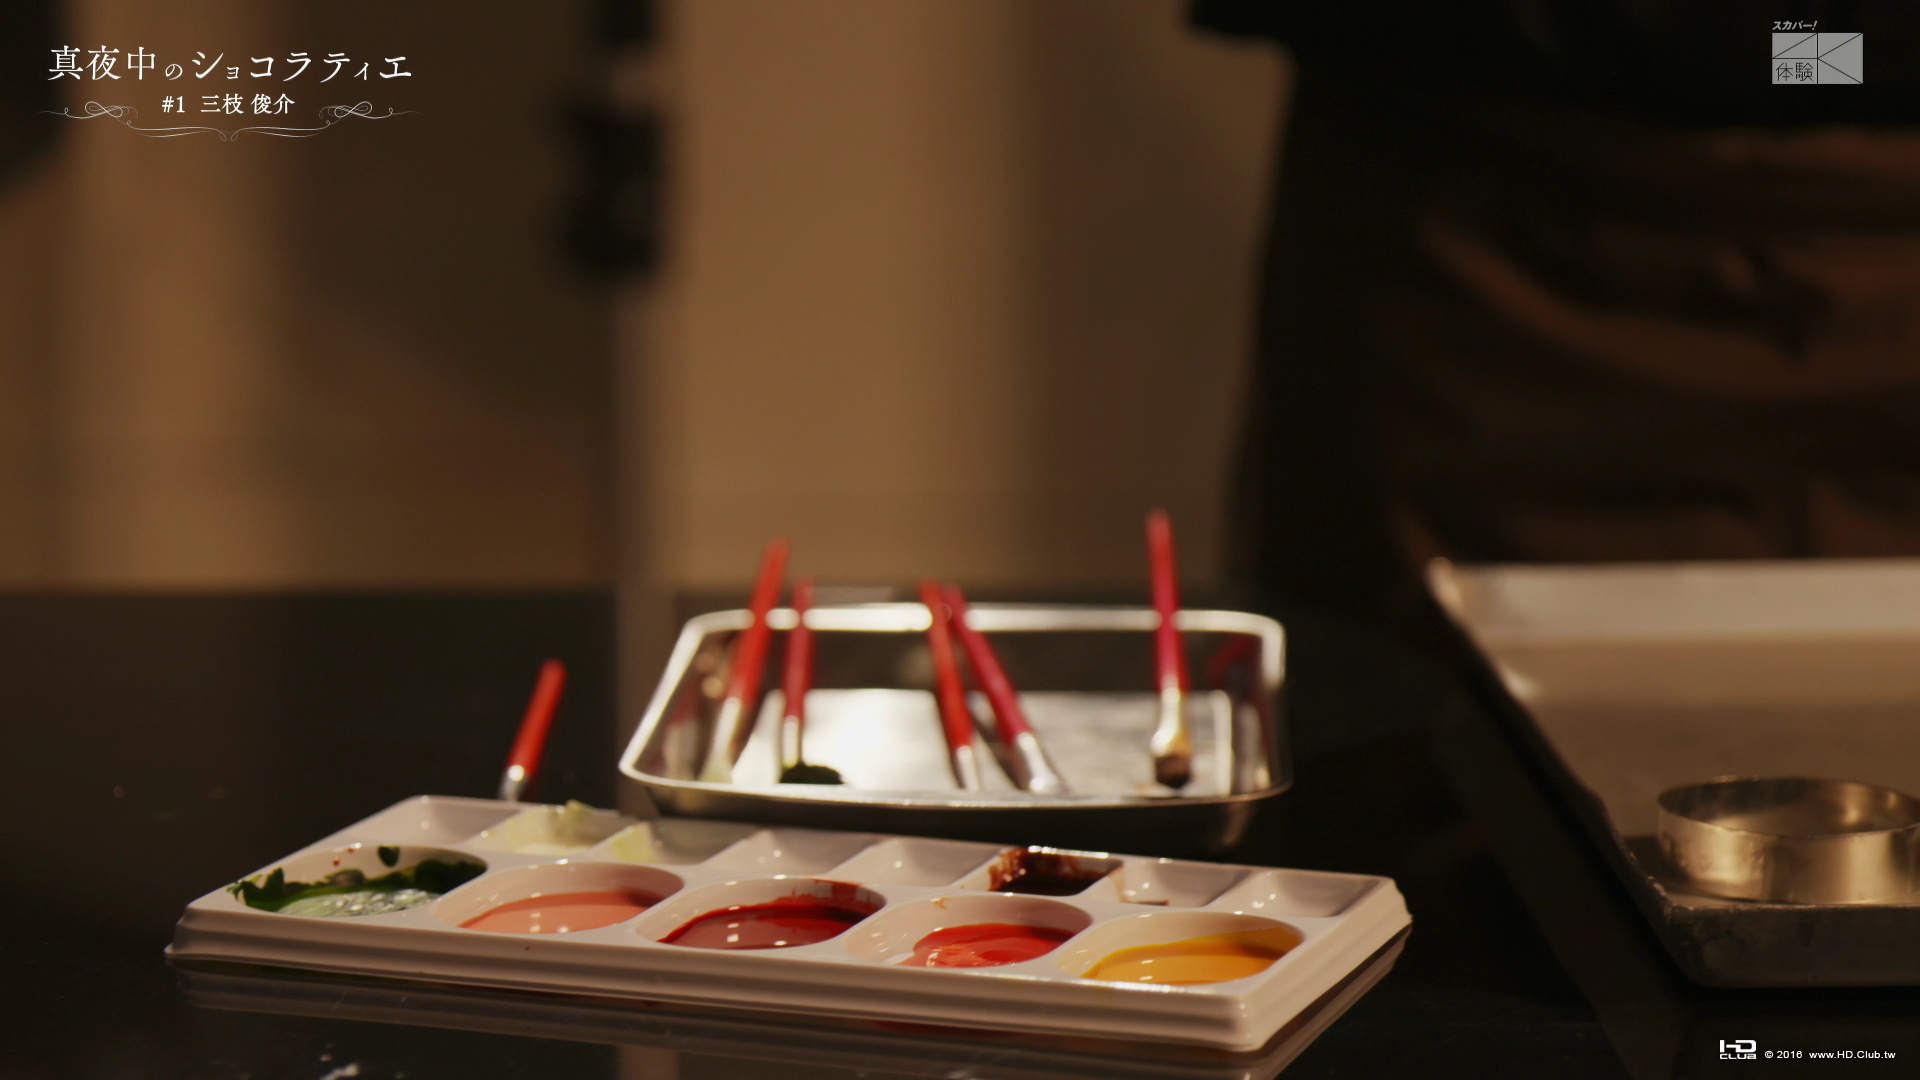 Screenshot_2016-10-12-12-33-26.png